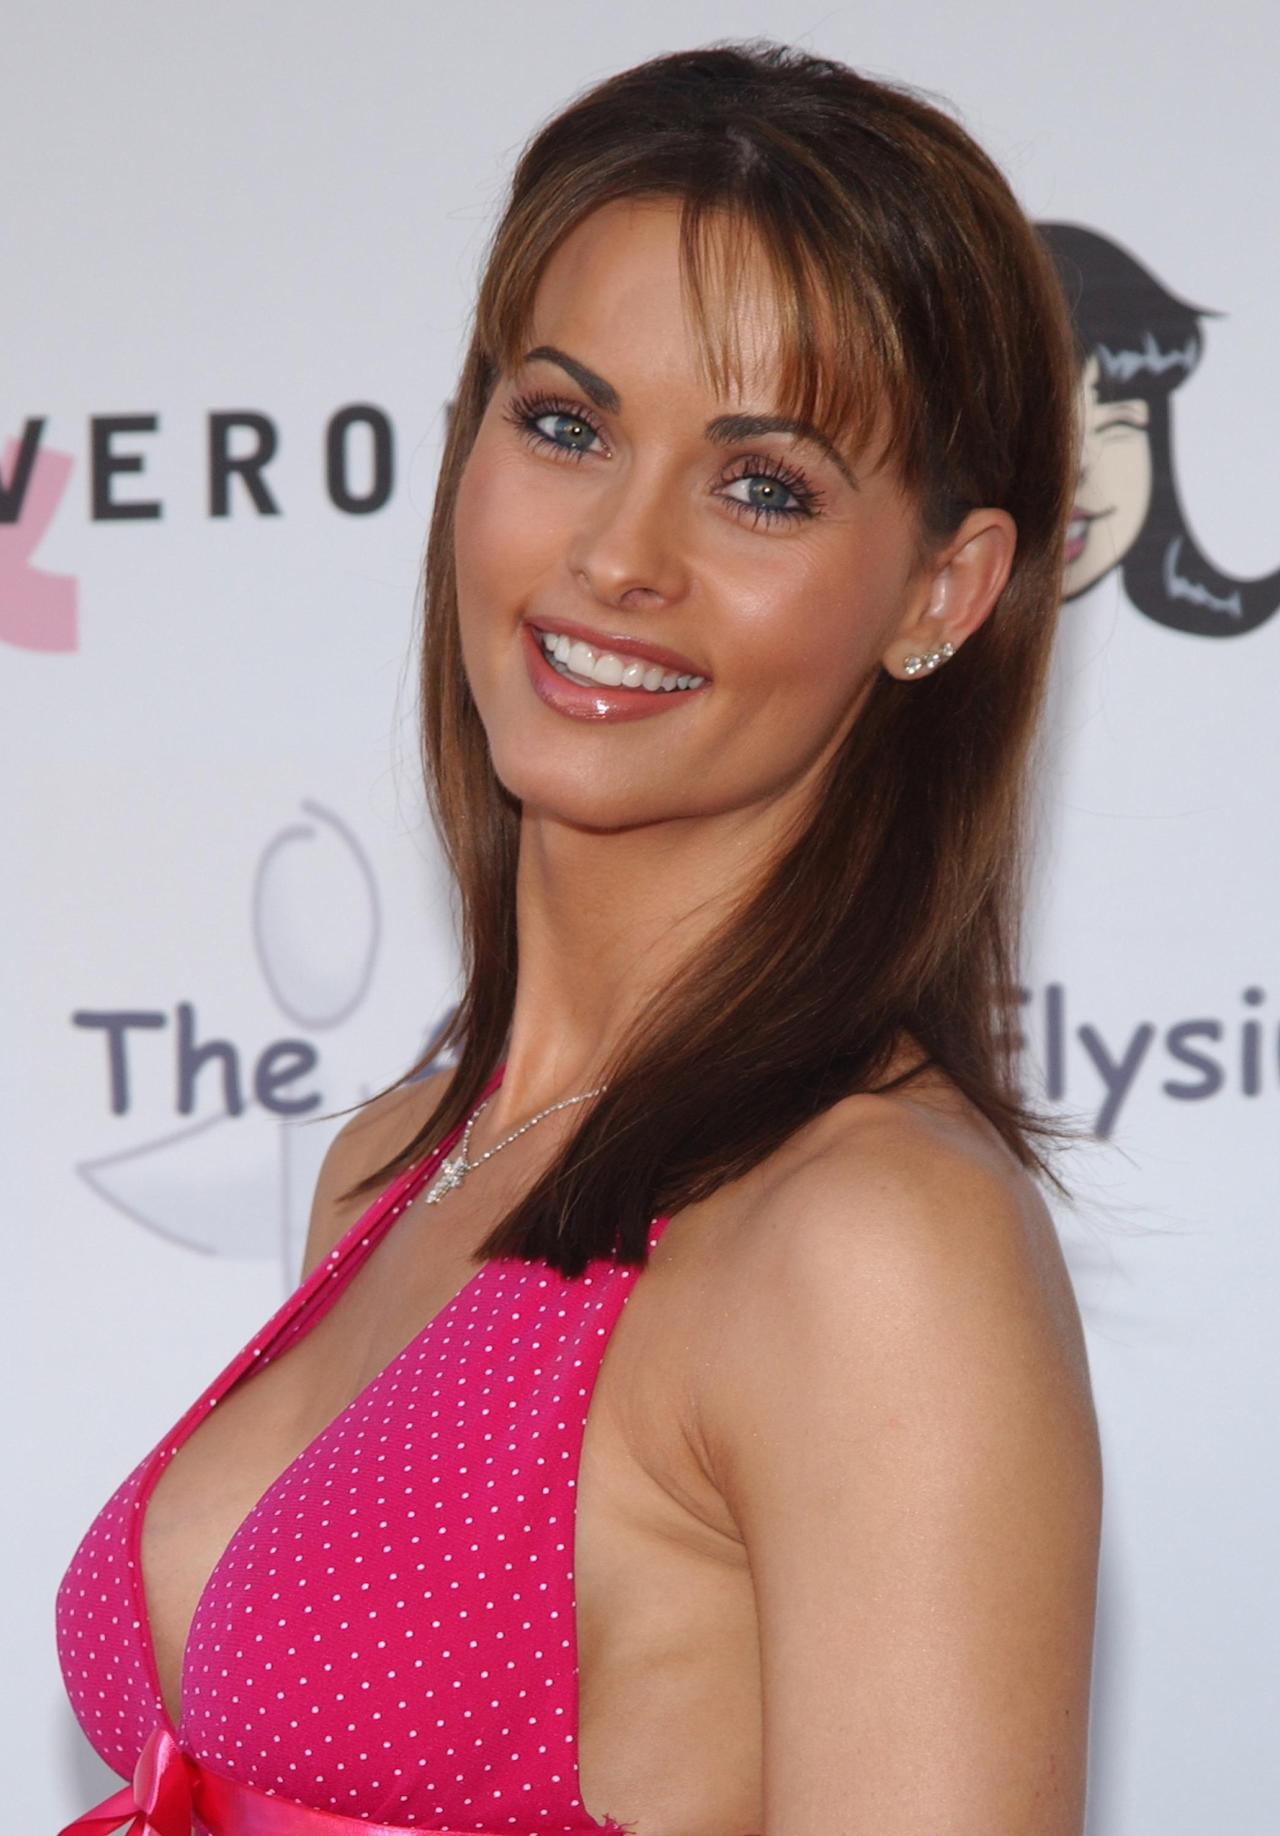 Karen McDougal settles lawsuit with publisher and can now